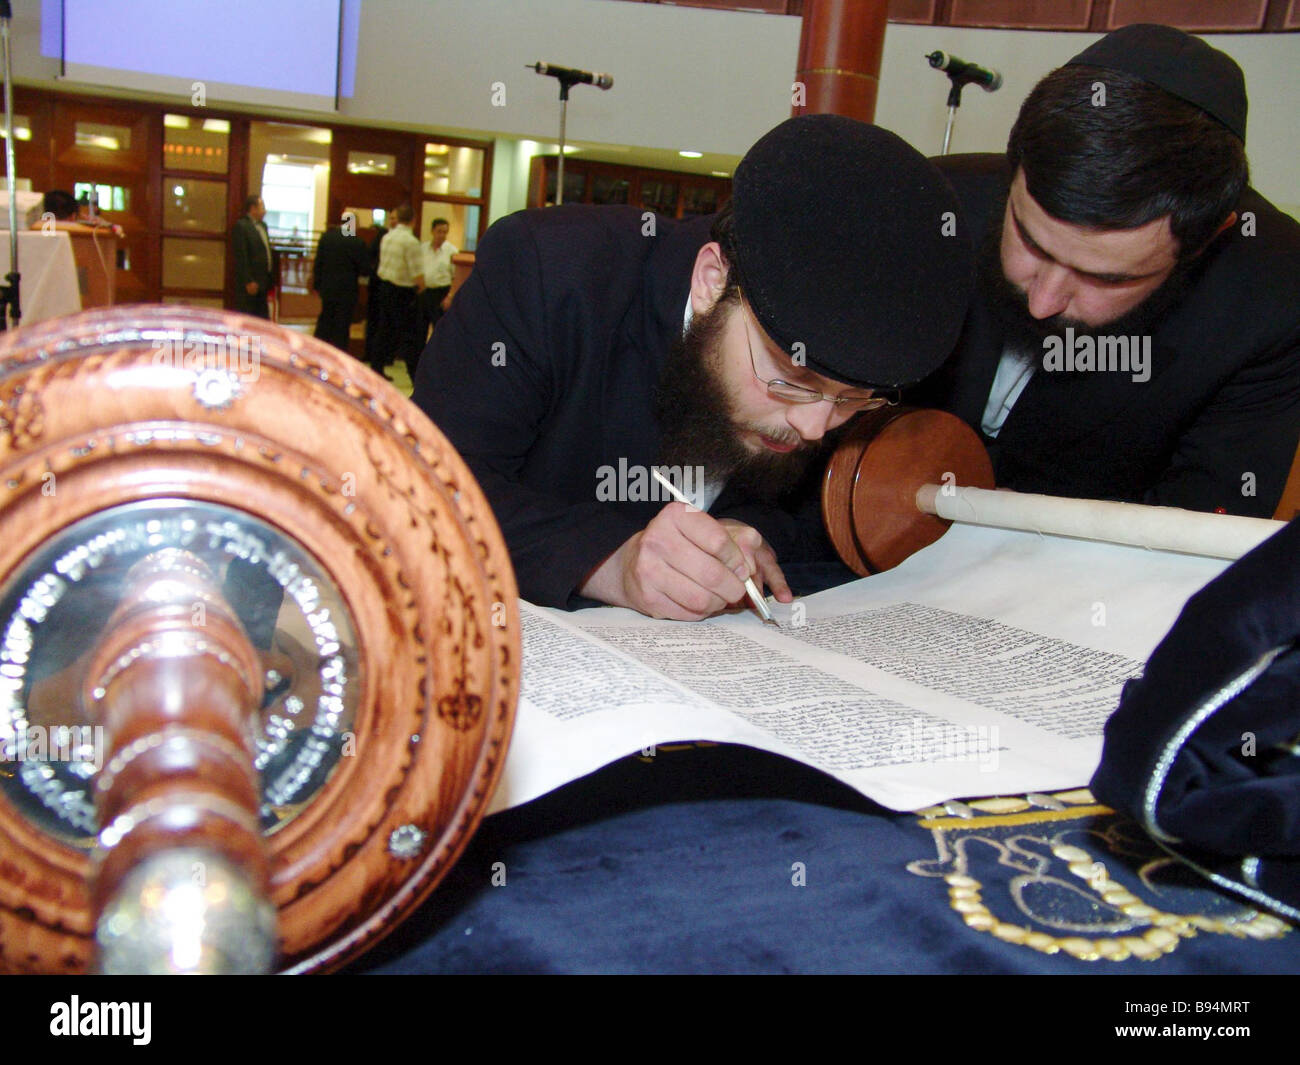 Writing a Torah scroll at the Moscow Jewish Community Centre during the celebrations of Lag Baomer - Stock Image